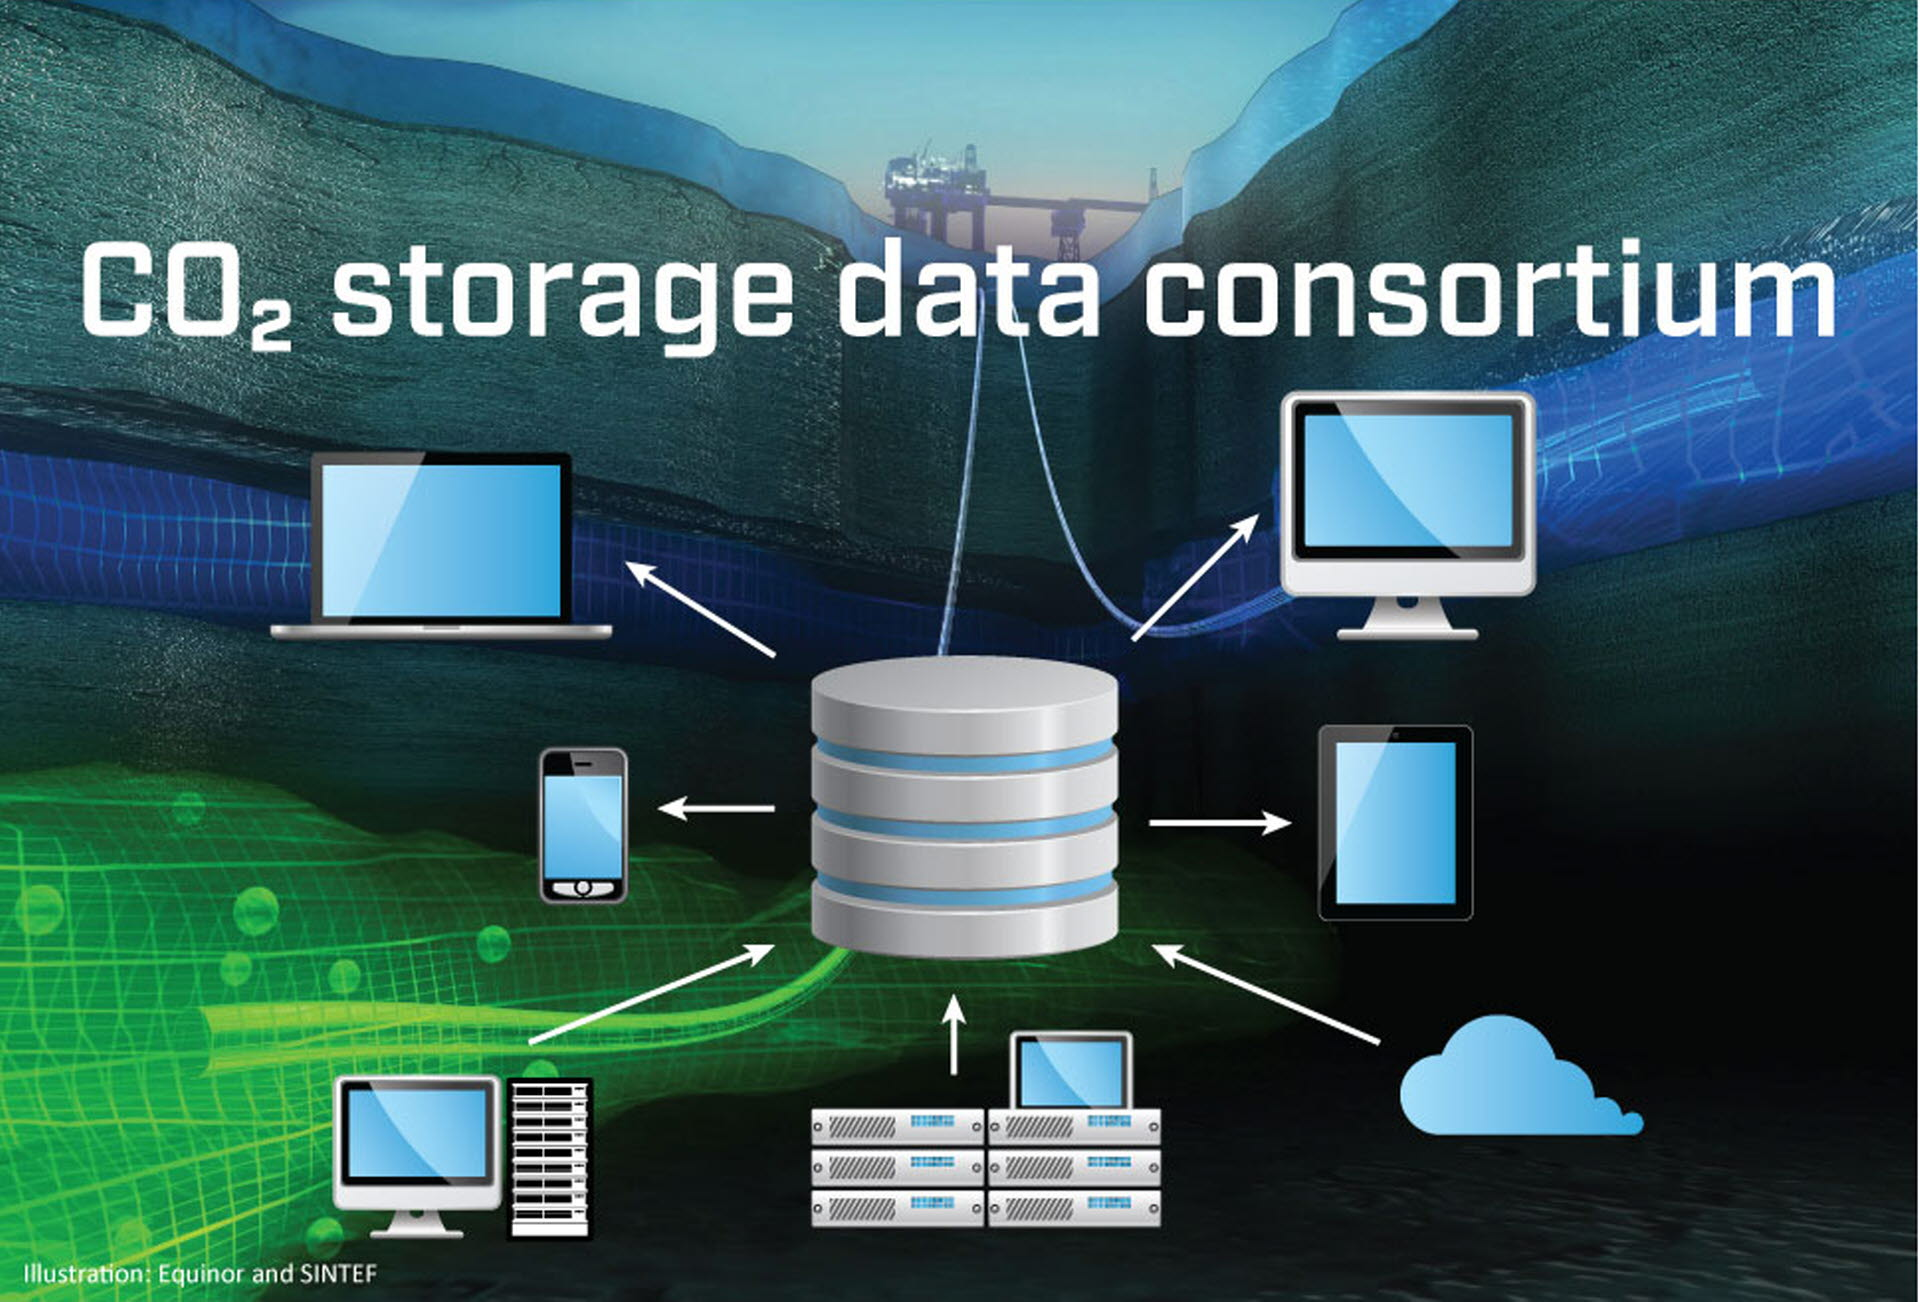 CO2 Data Share: The CO2 Storage Data Consortium